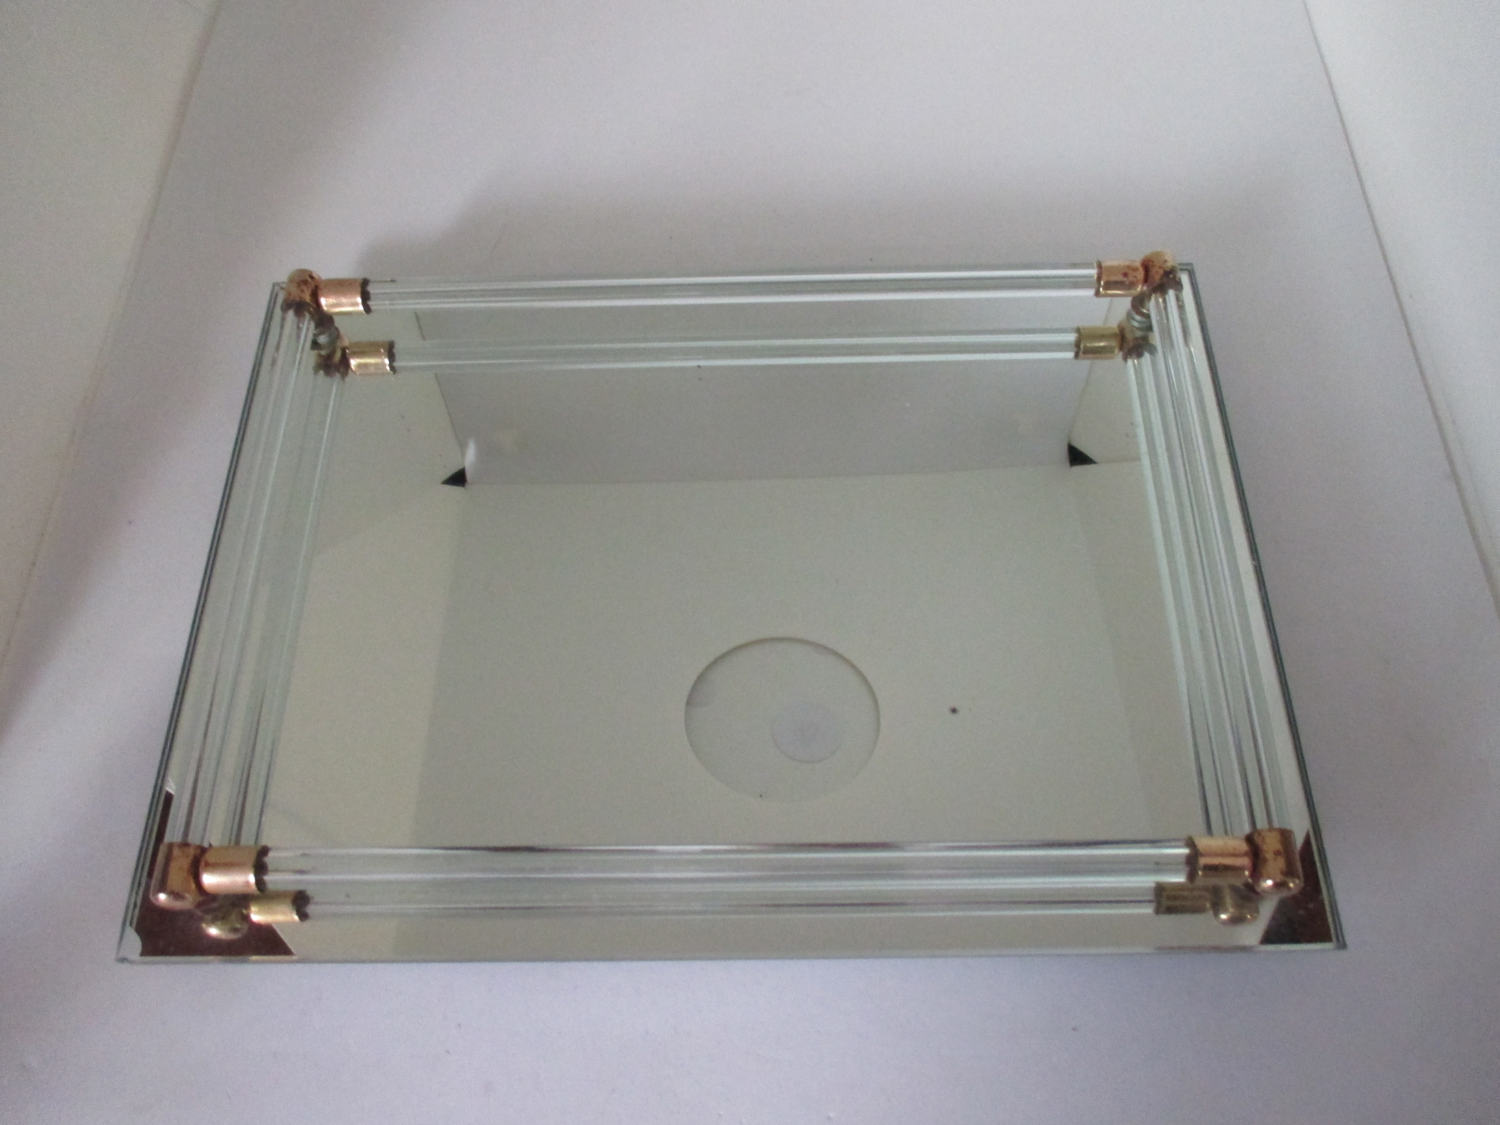 Vintage dresser vanity tray mirrored glass with glass rods for Mirrored bathroom tray